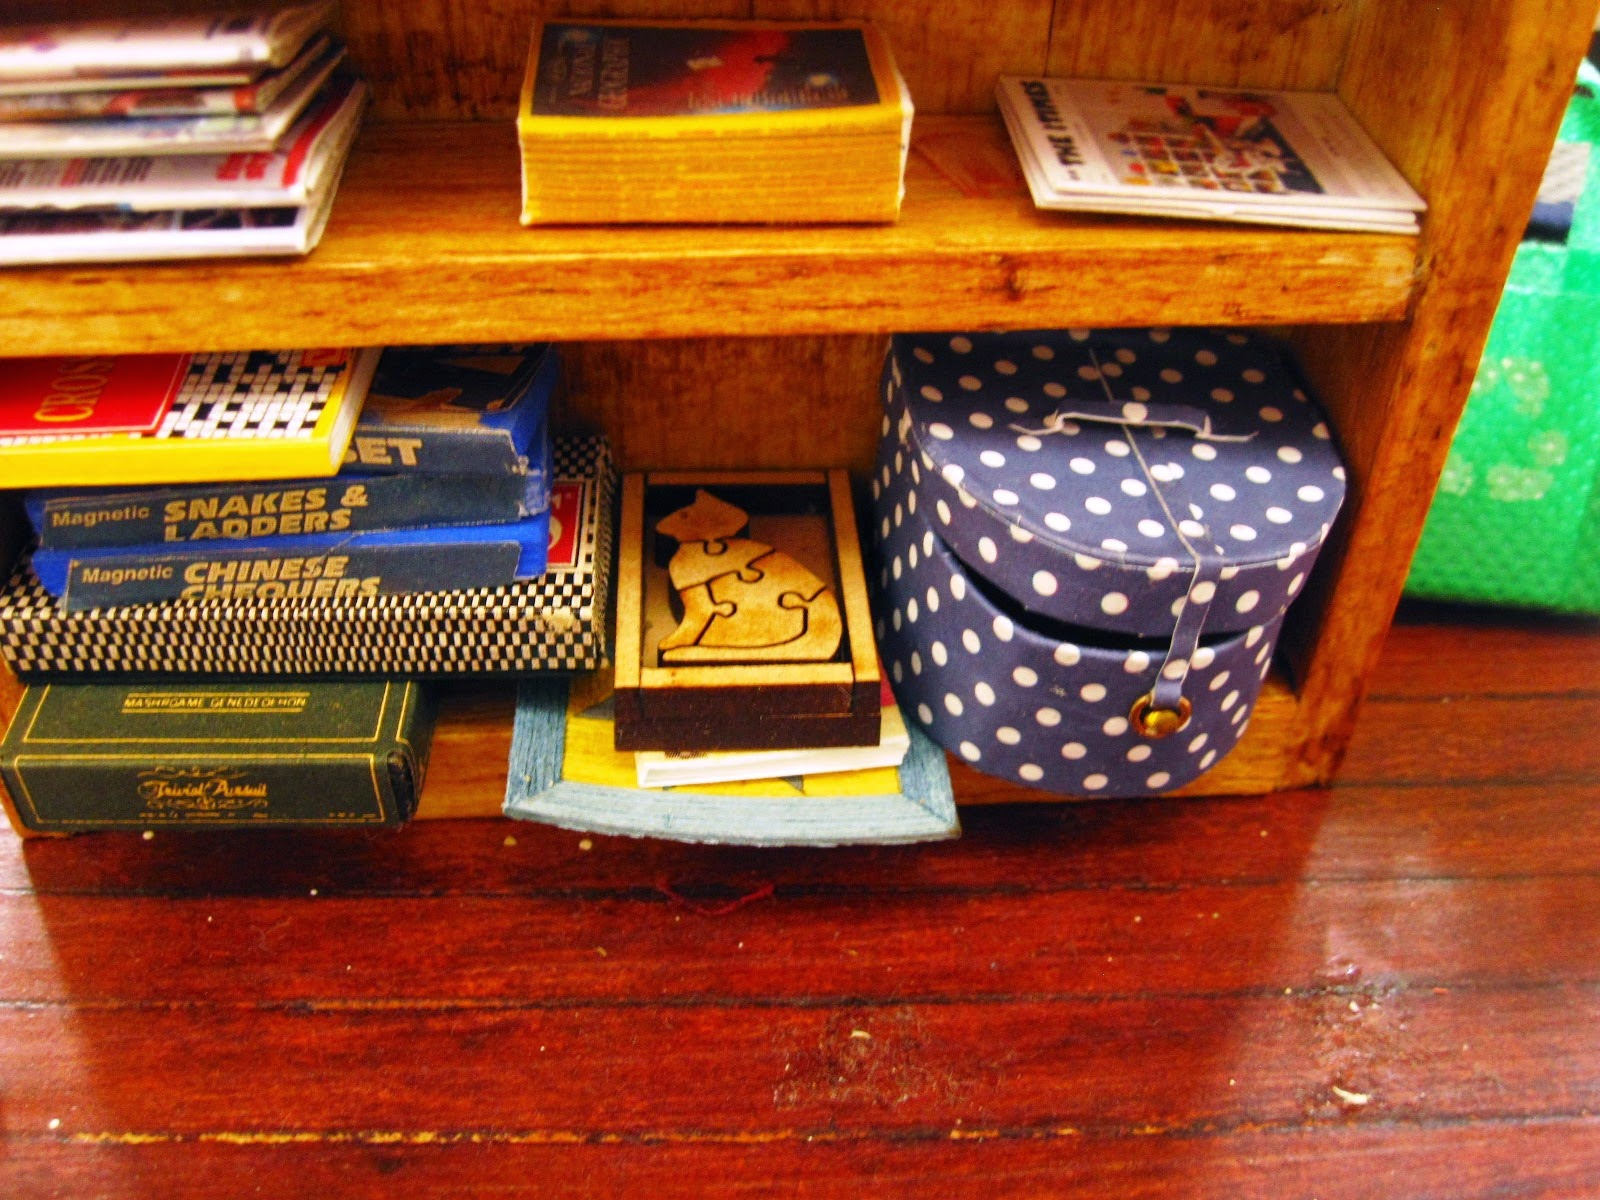 Modern dolls' house miniature games shelf.